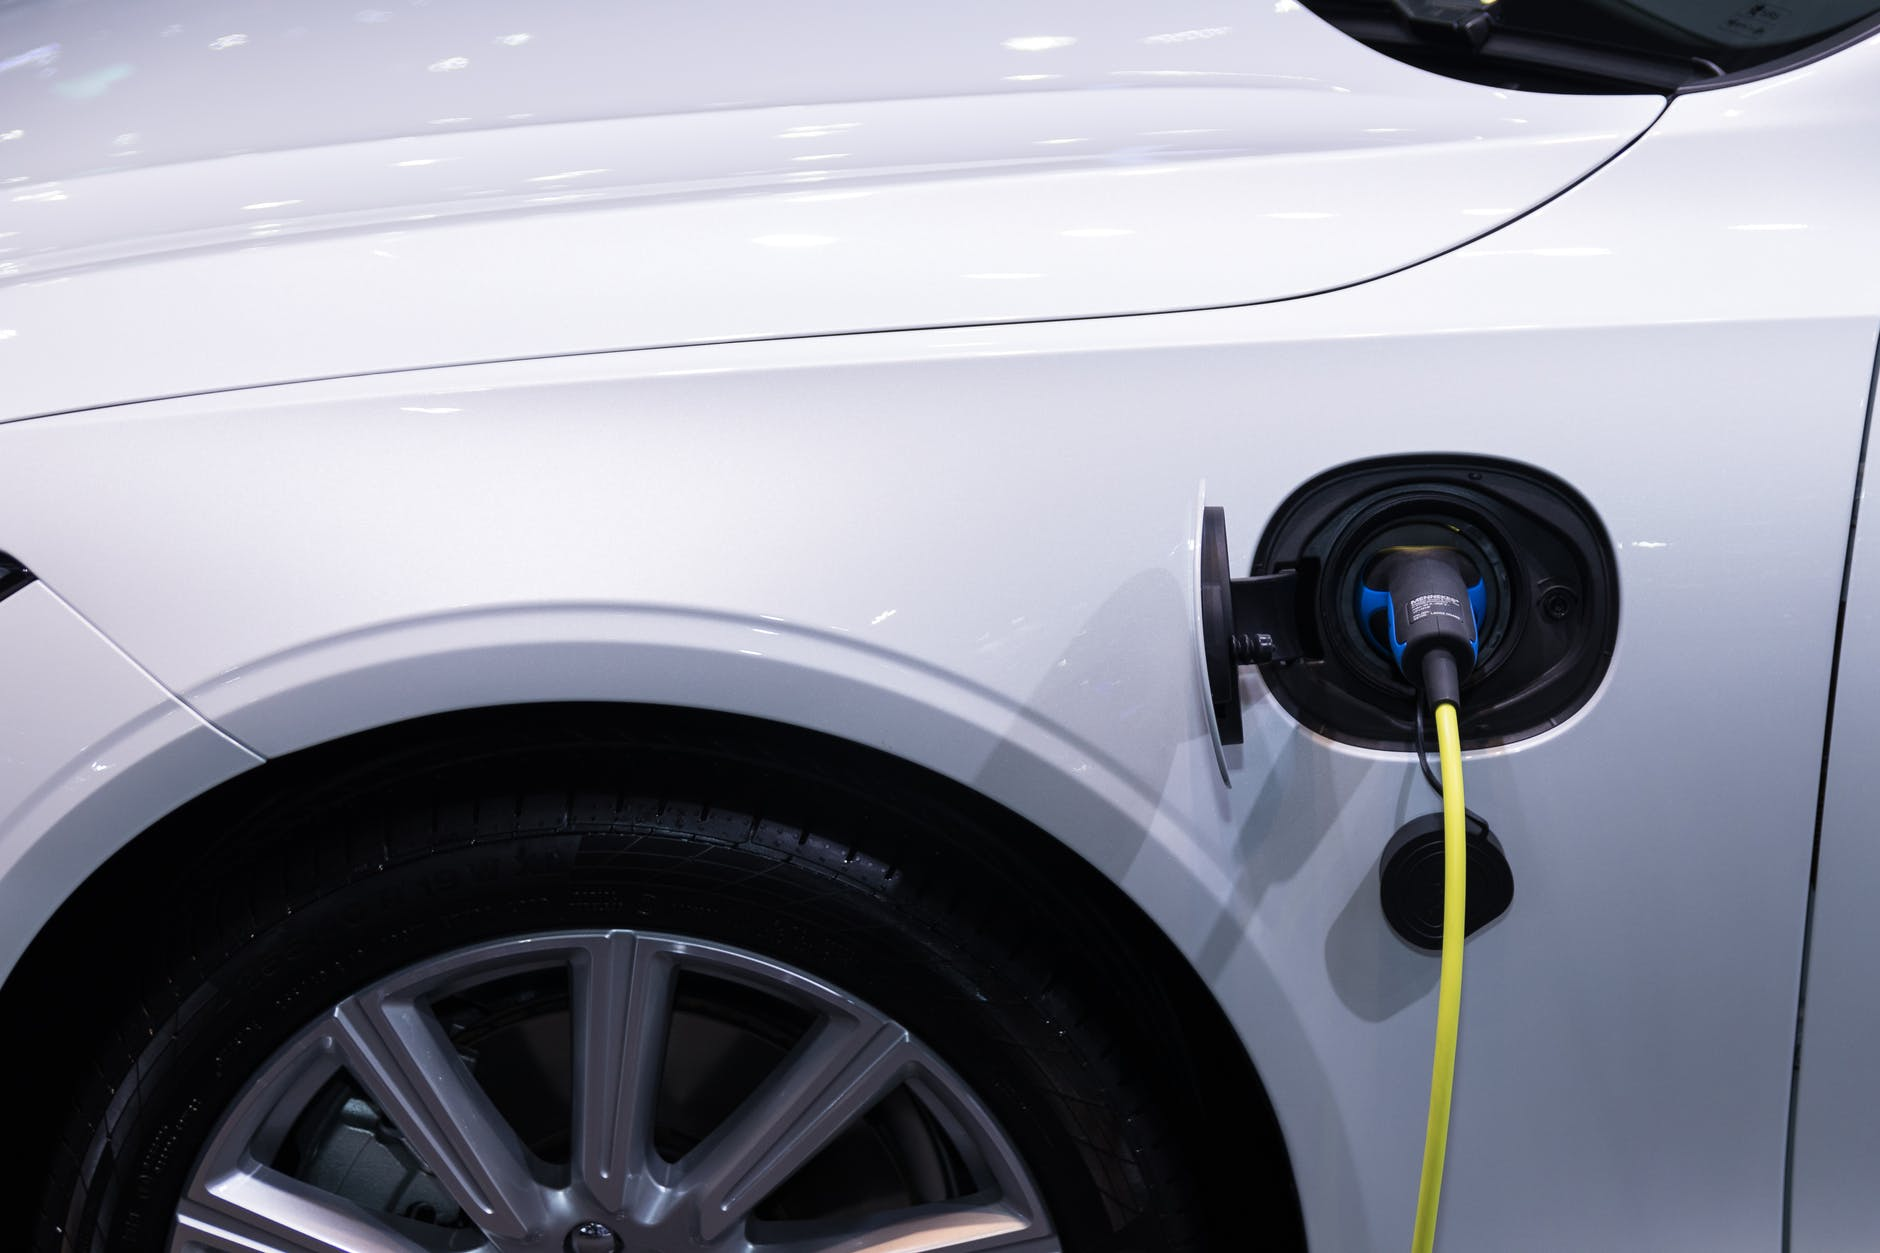 An electric car is charging its battery